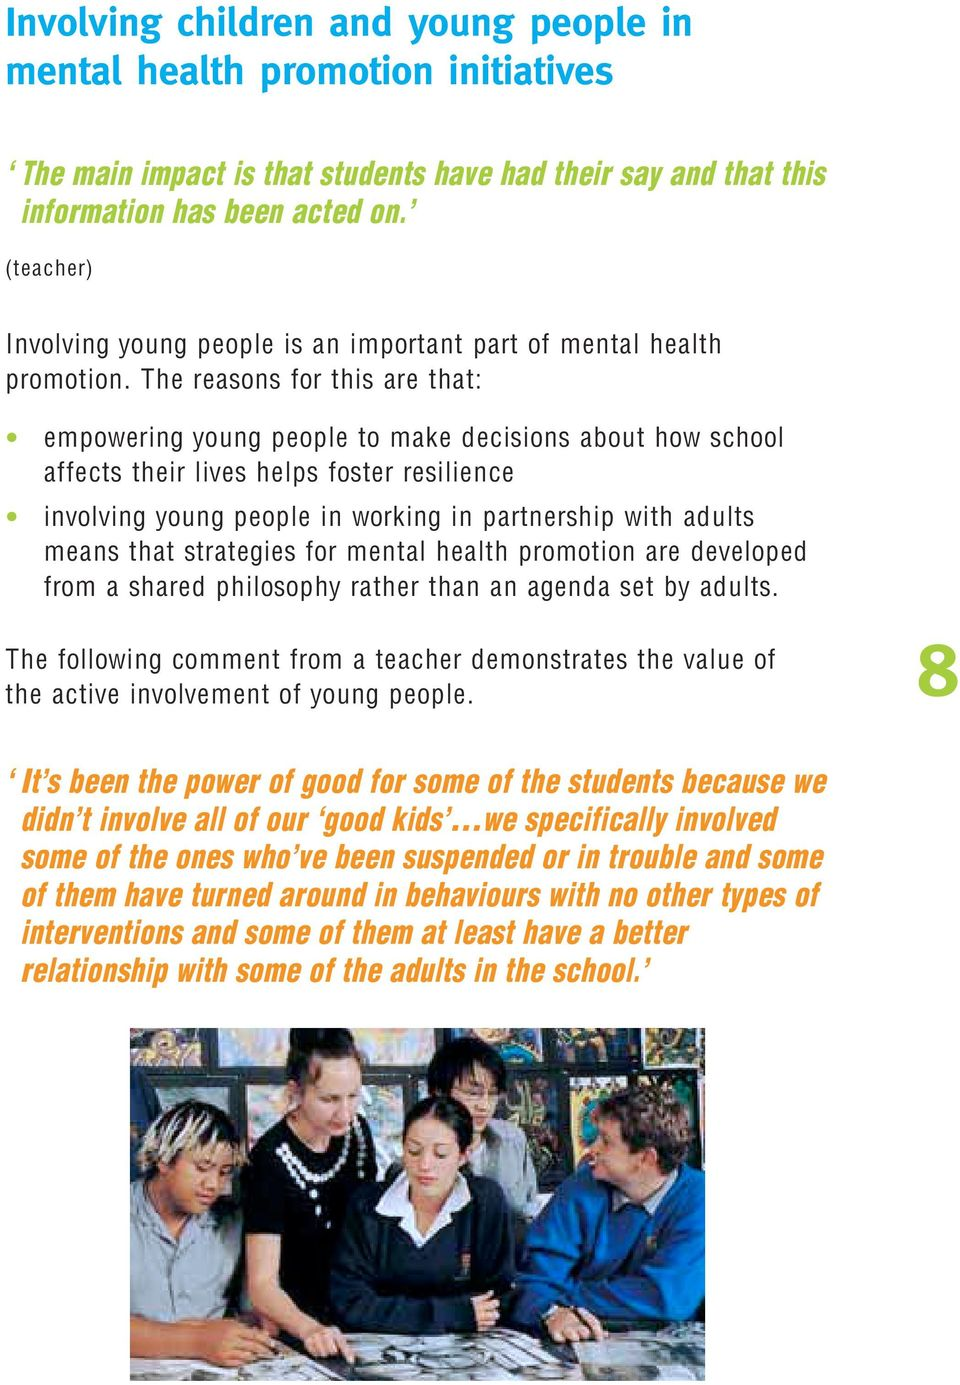 The reasons for this are that: empowering young people to make decisions about how school affects their lives helps foster resilience involving young people in working in partnership with adults